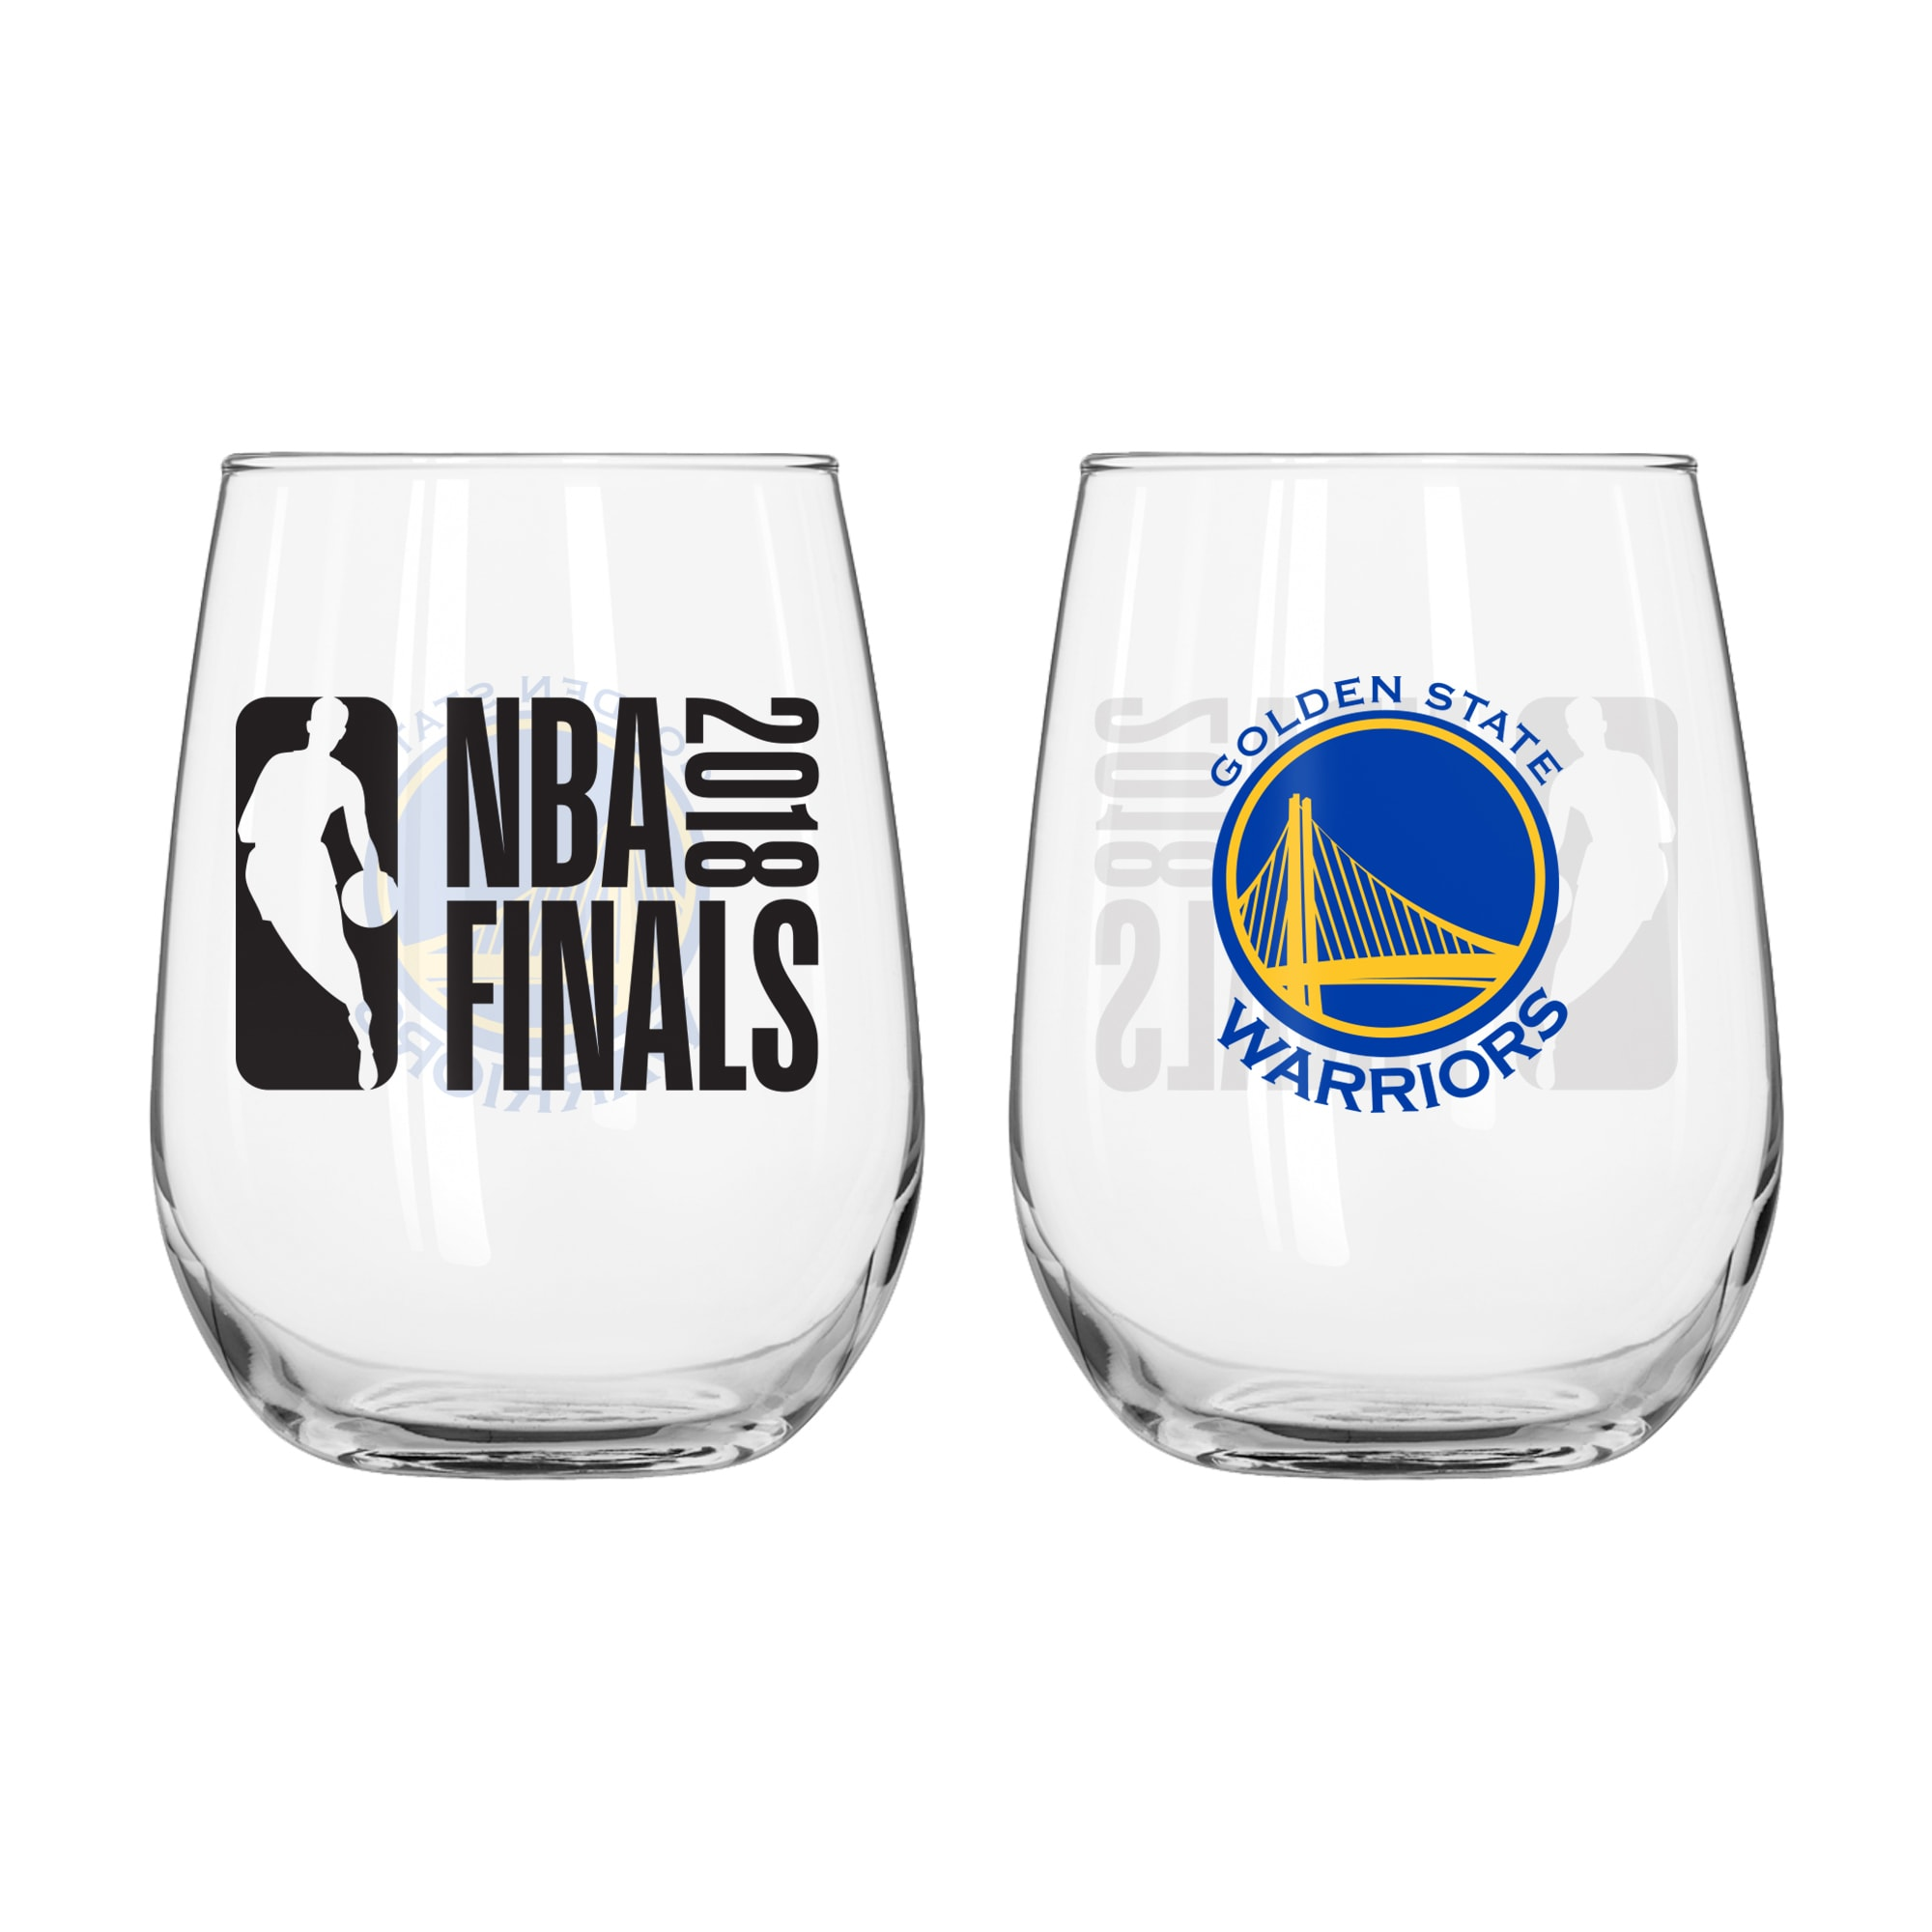 Golden State Warriors 2018 NBA Finals Bound 16oz. Stemless Wine Glass